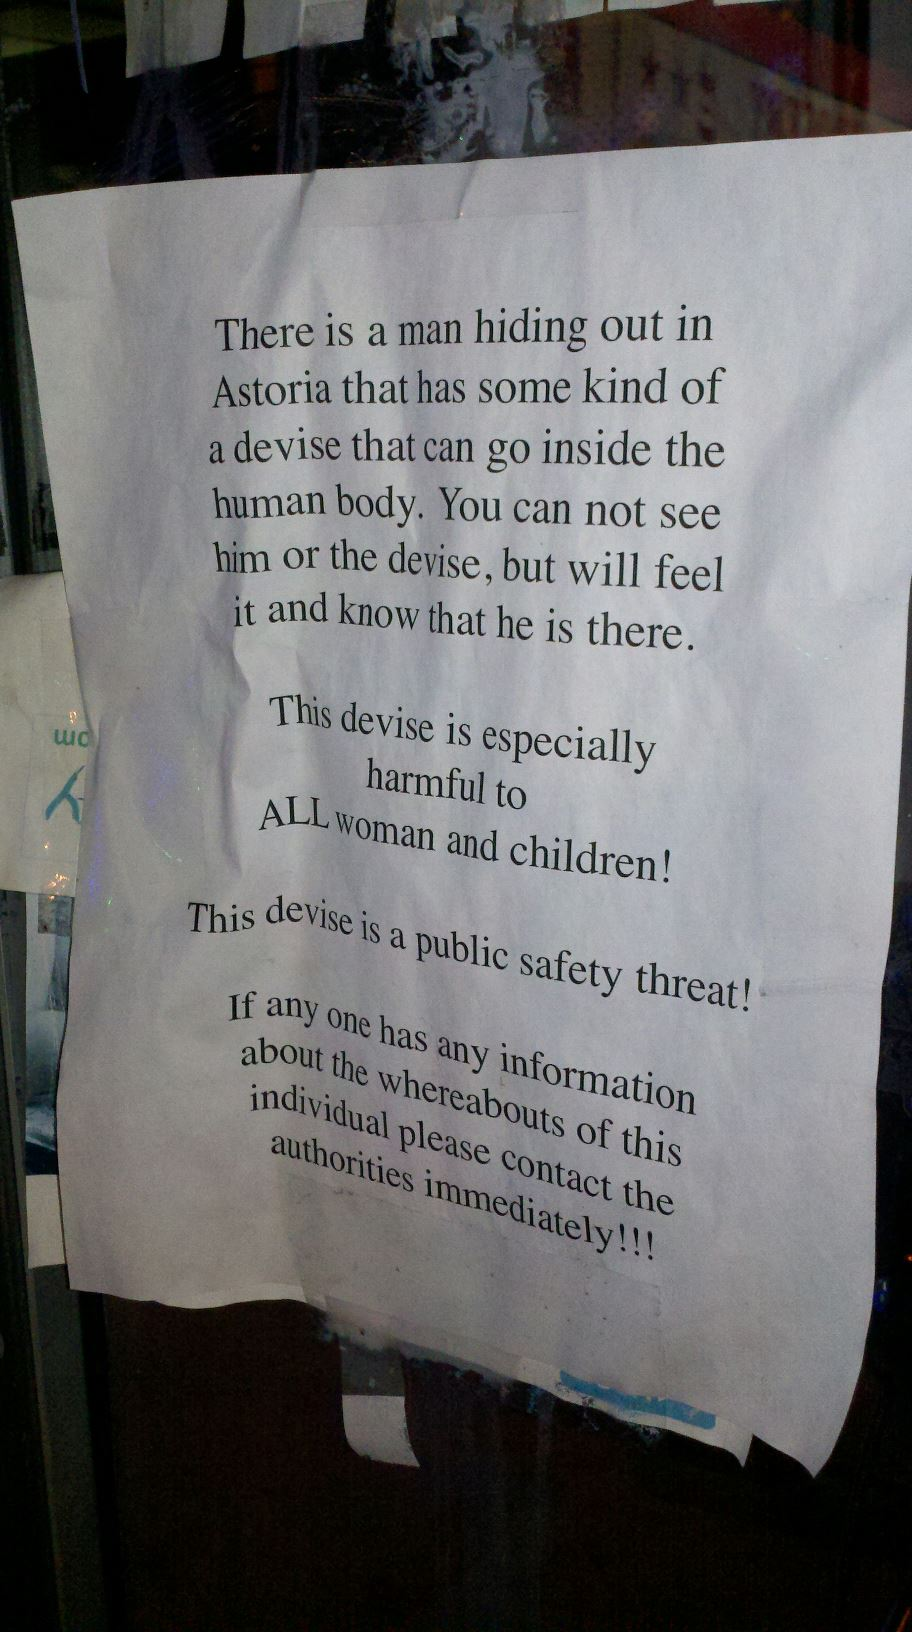 The most ominous neighborhood safety flyer ever posted by an obviously insane person.